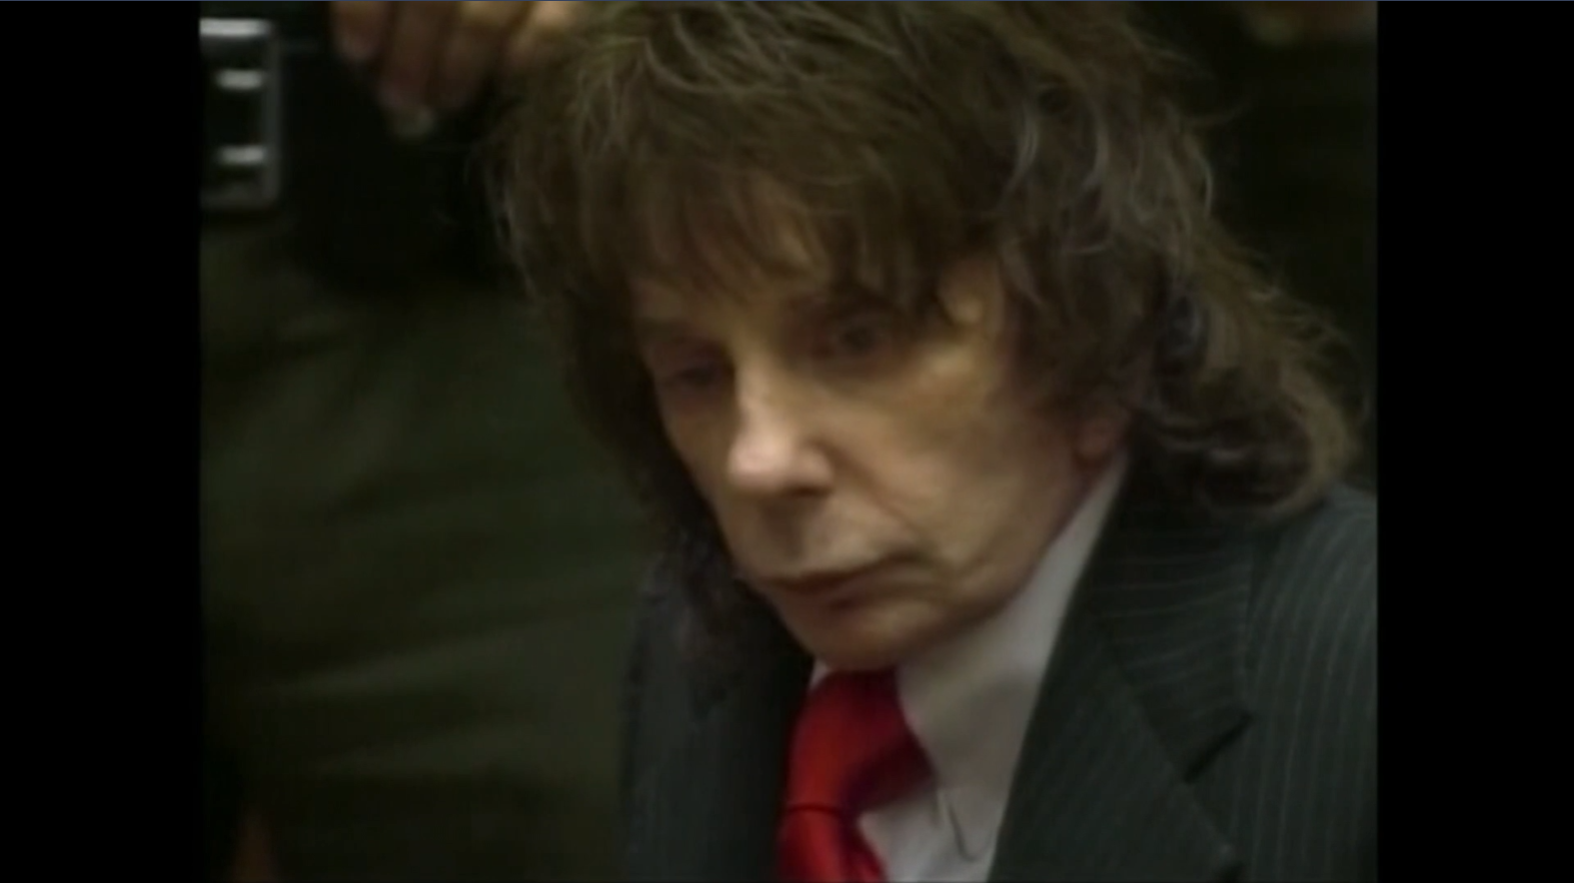 Convicted murderer and former music producer Phil Spector dies in jail at 81 - channel 4